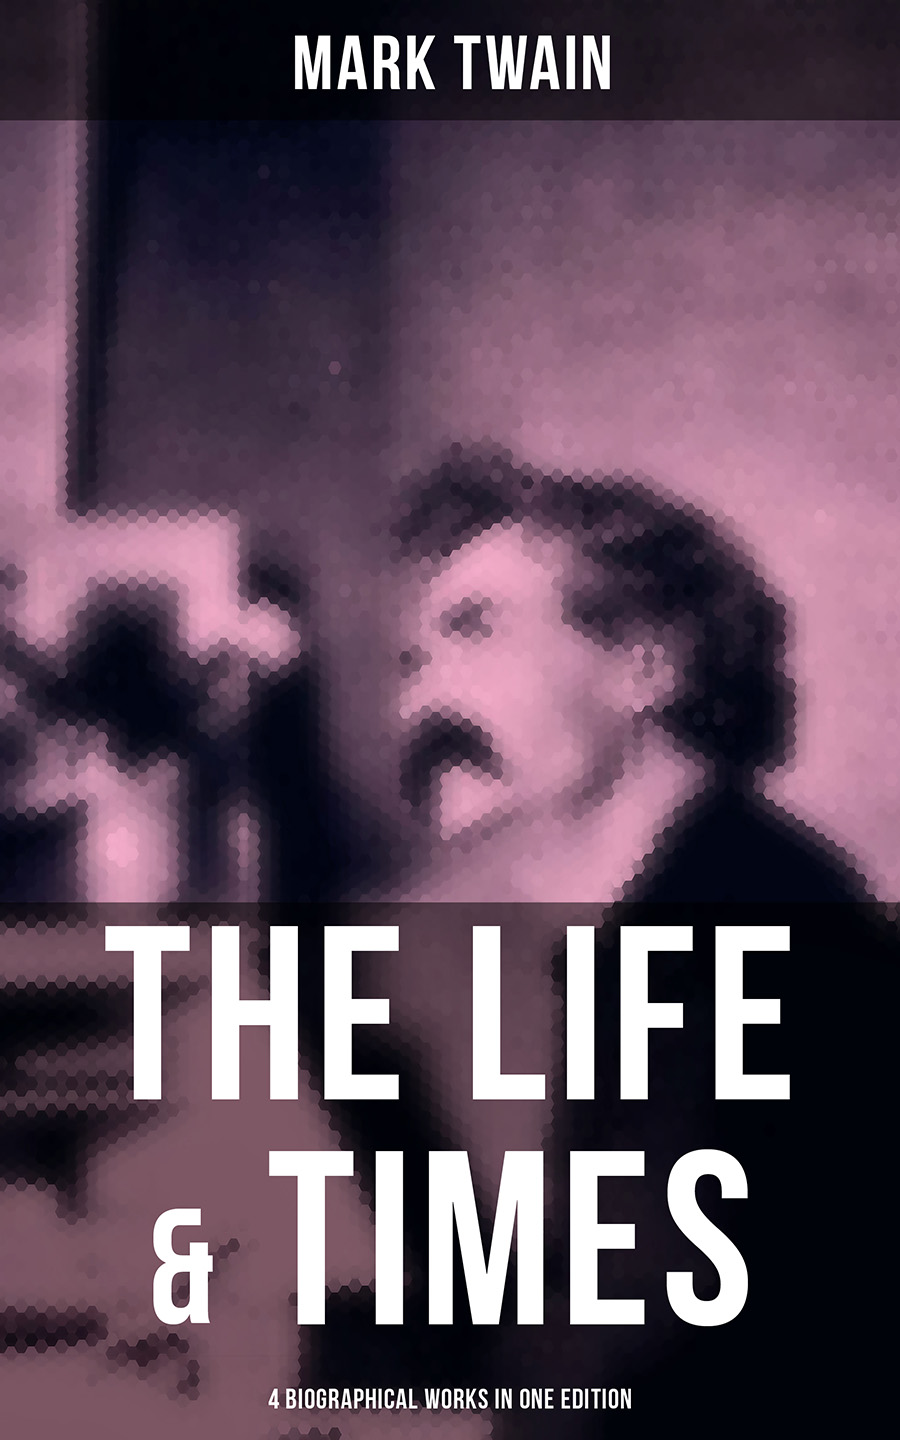 the life times of mark twain 4 biographical works in one edition